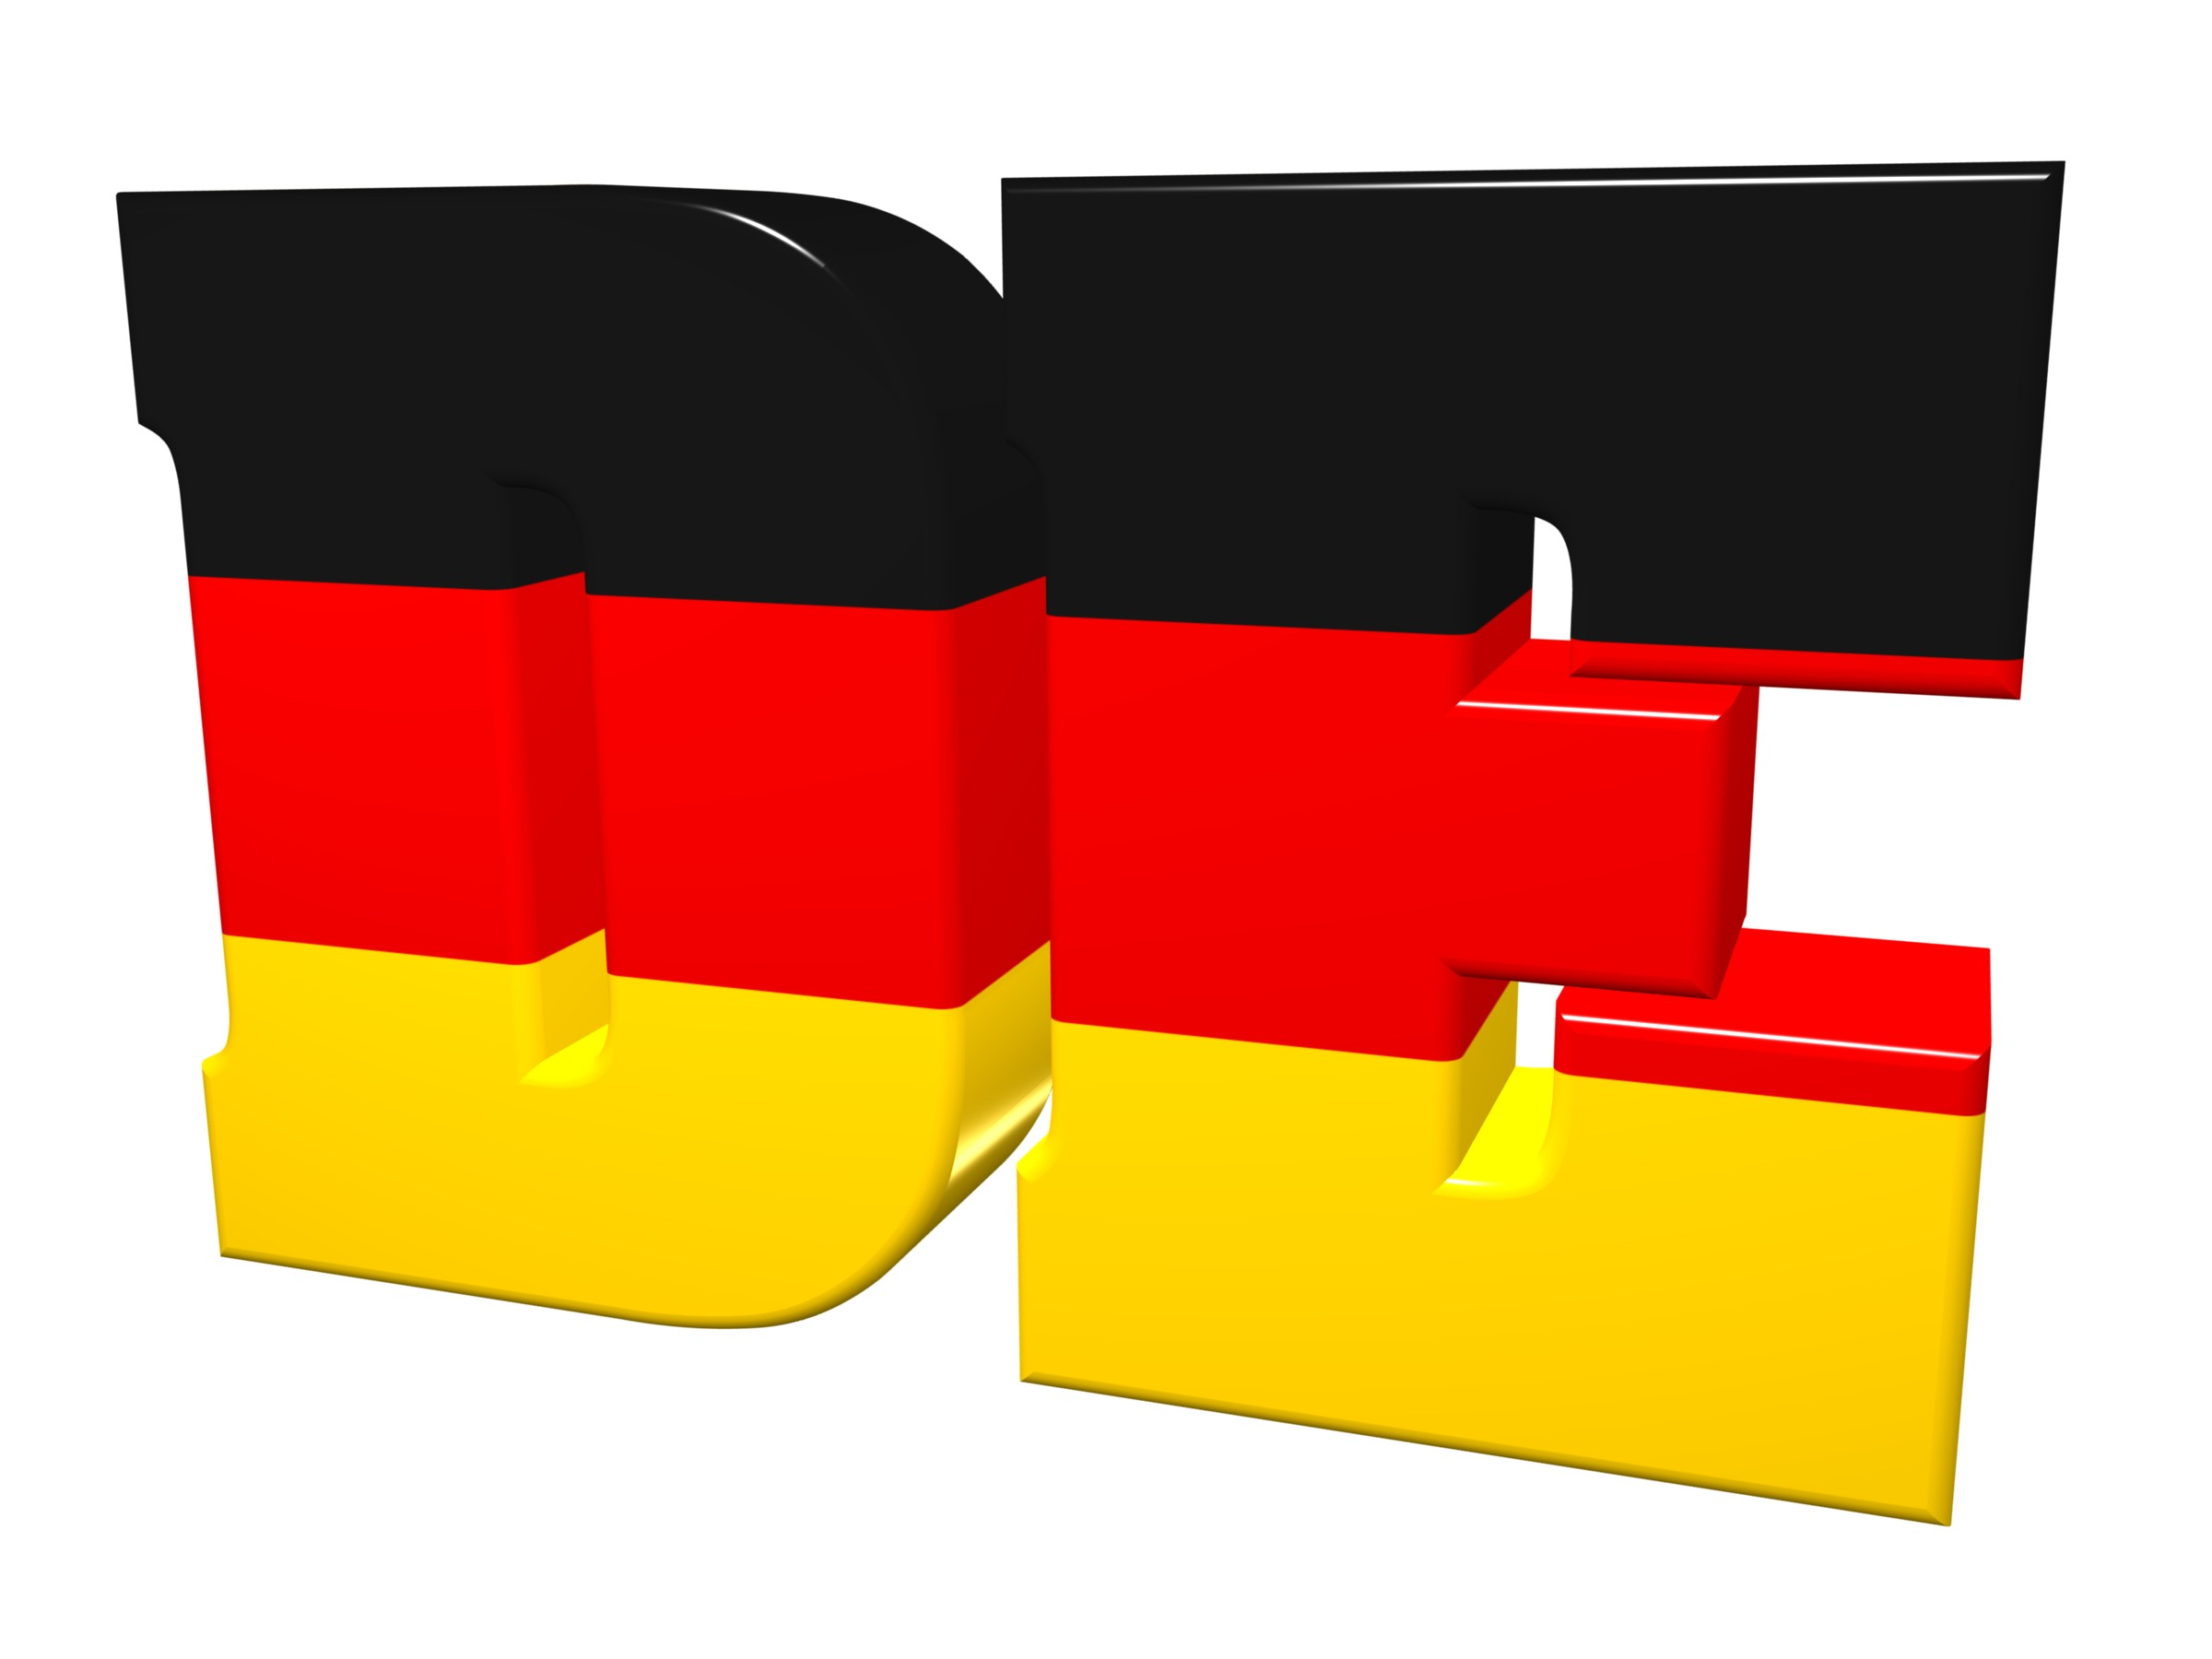 15000 German visitors traffic for 30 days